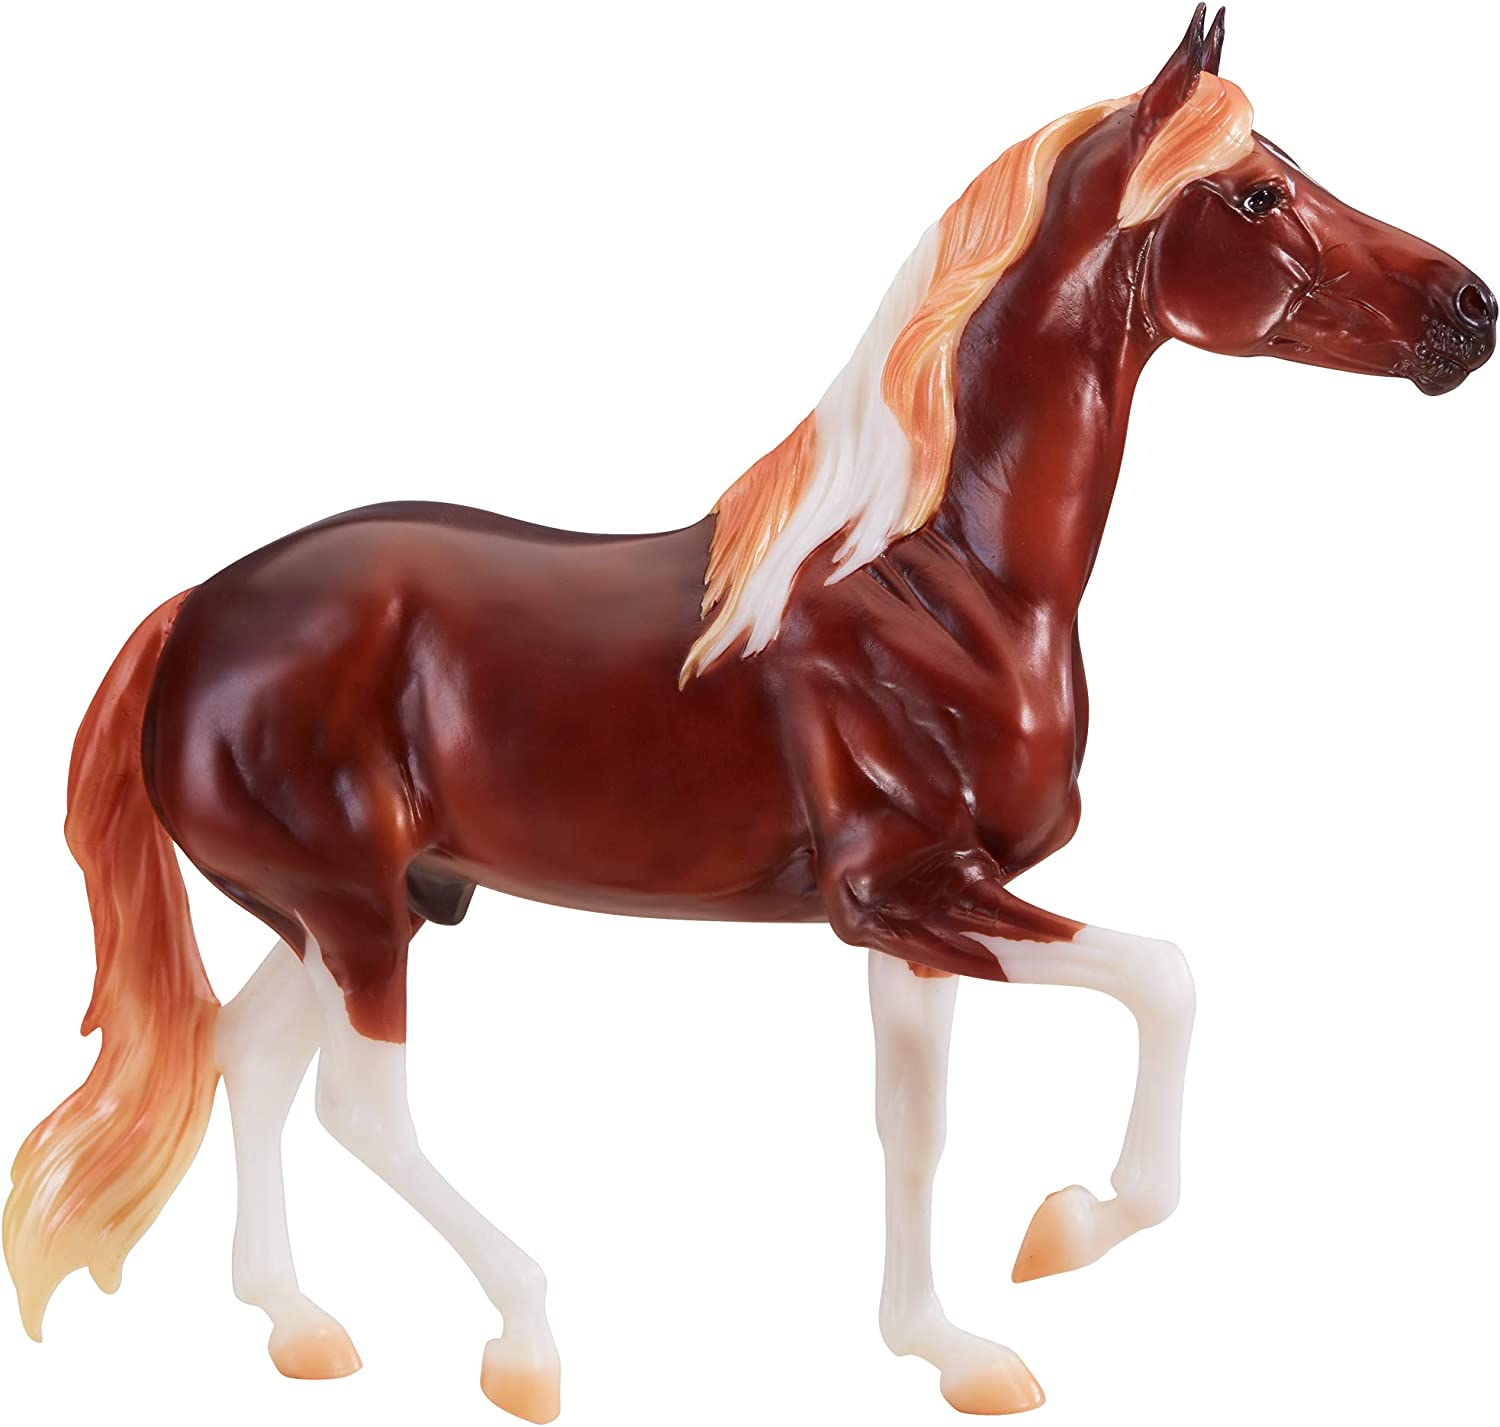 /</>/< 700122 MINSTREL Breyer 2019 HOLIDAY HORSE 23 in series traditional Christmas